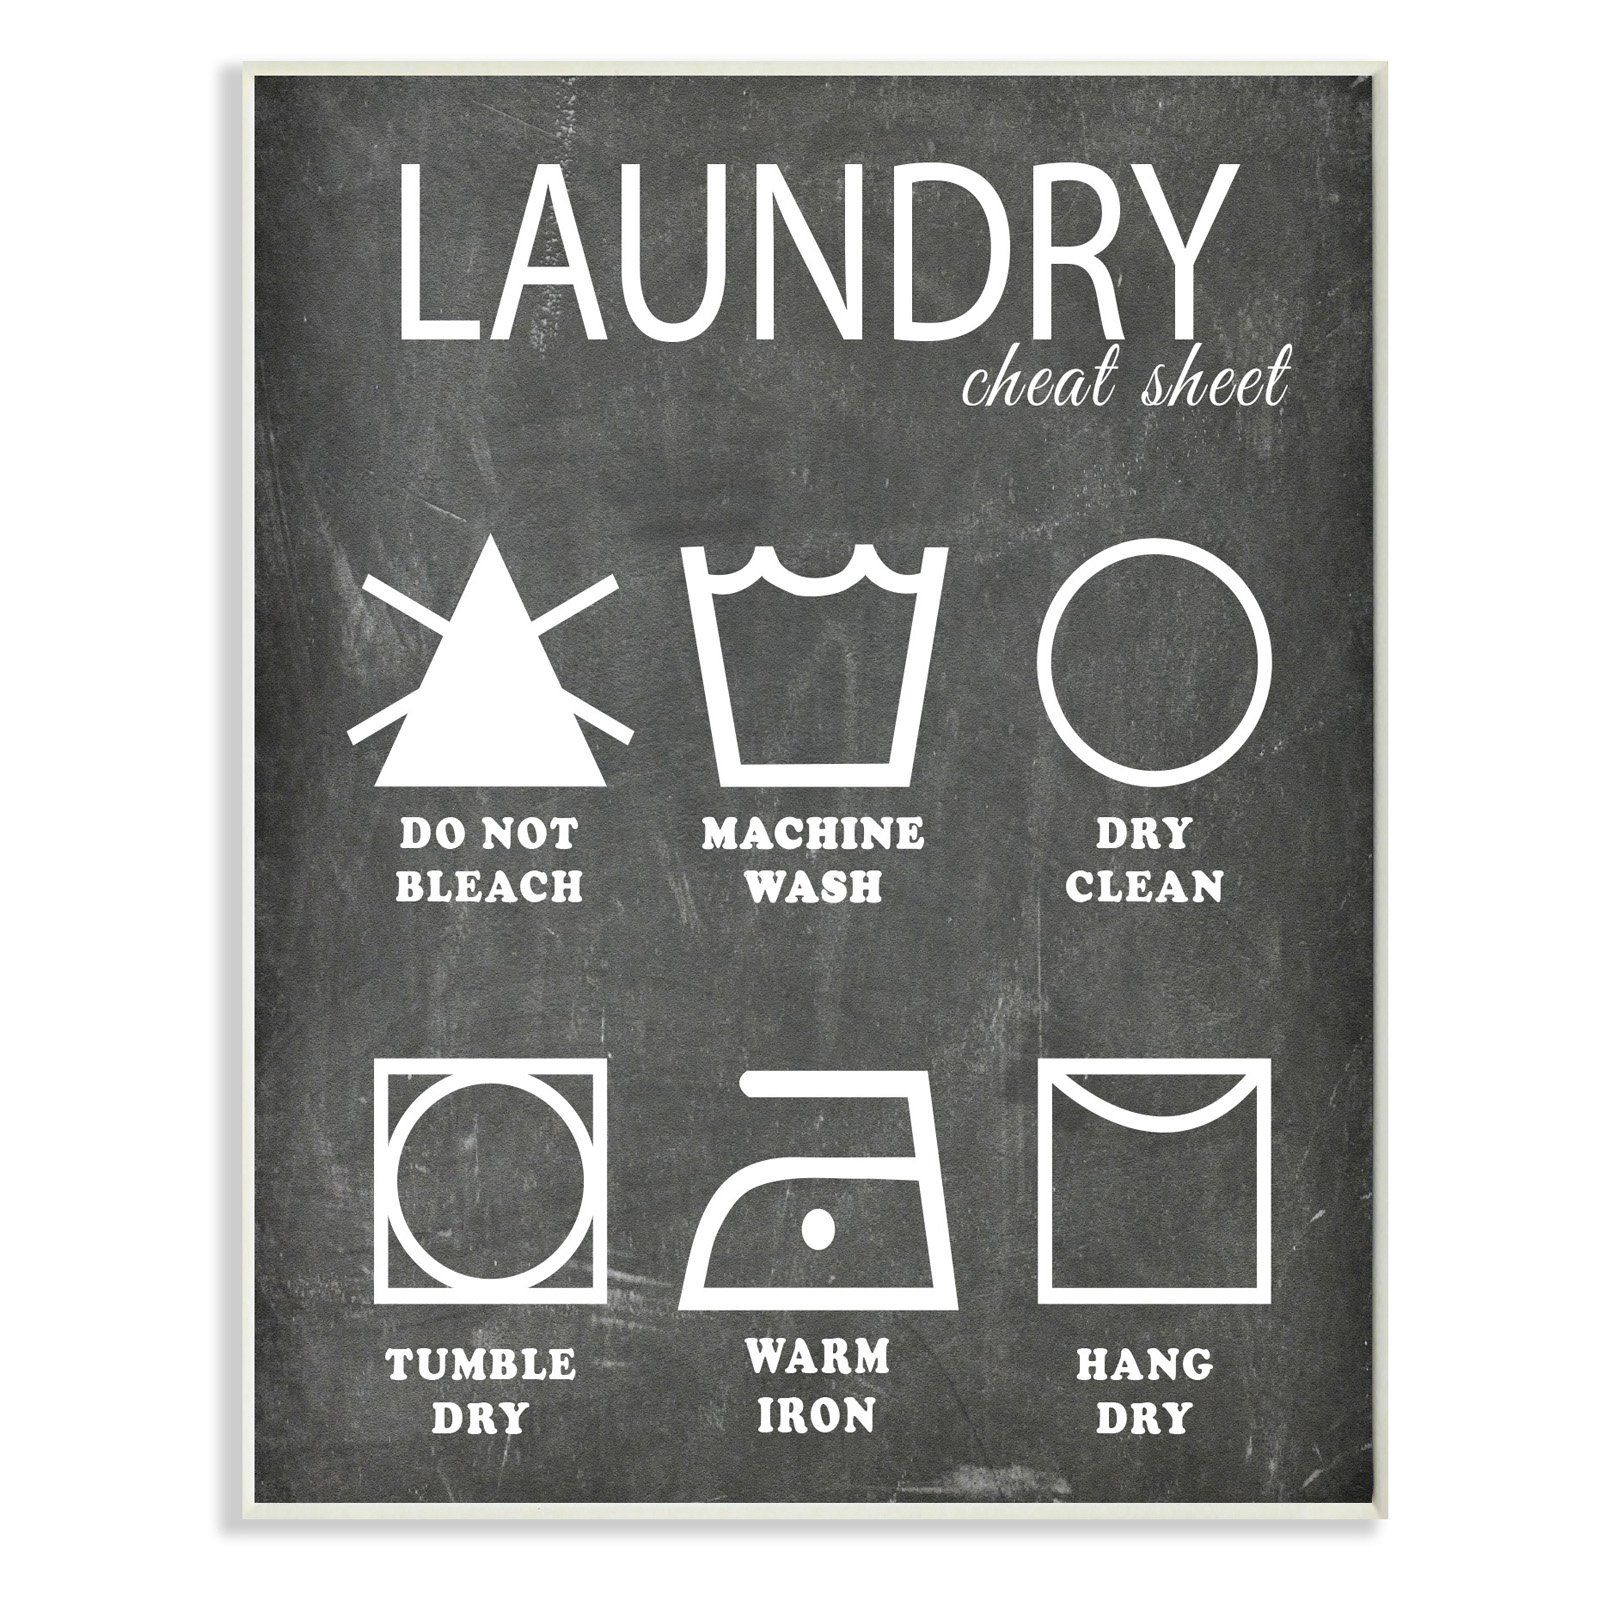 Laundry Wall Plaque Amusing Laundry Wall Plaque  Wall Plate Design Ideas Inspiration Design